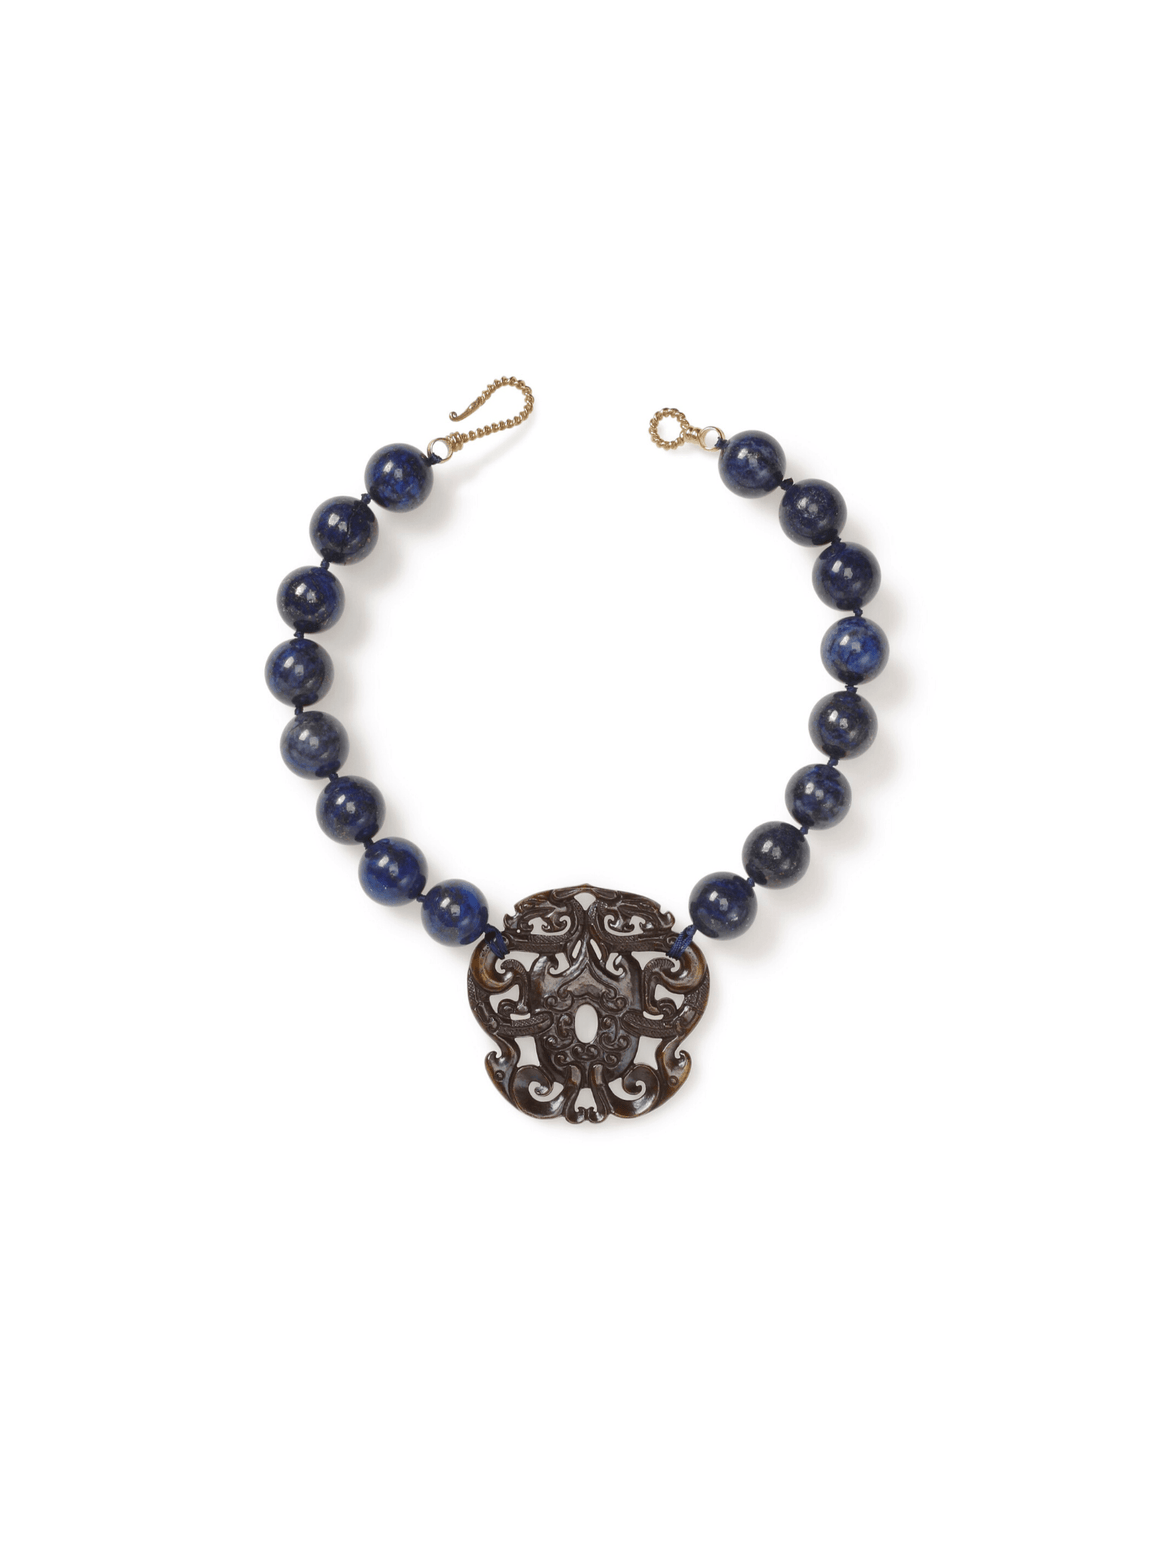 Blue Lapis Necklace with Brown Jade Pendant